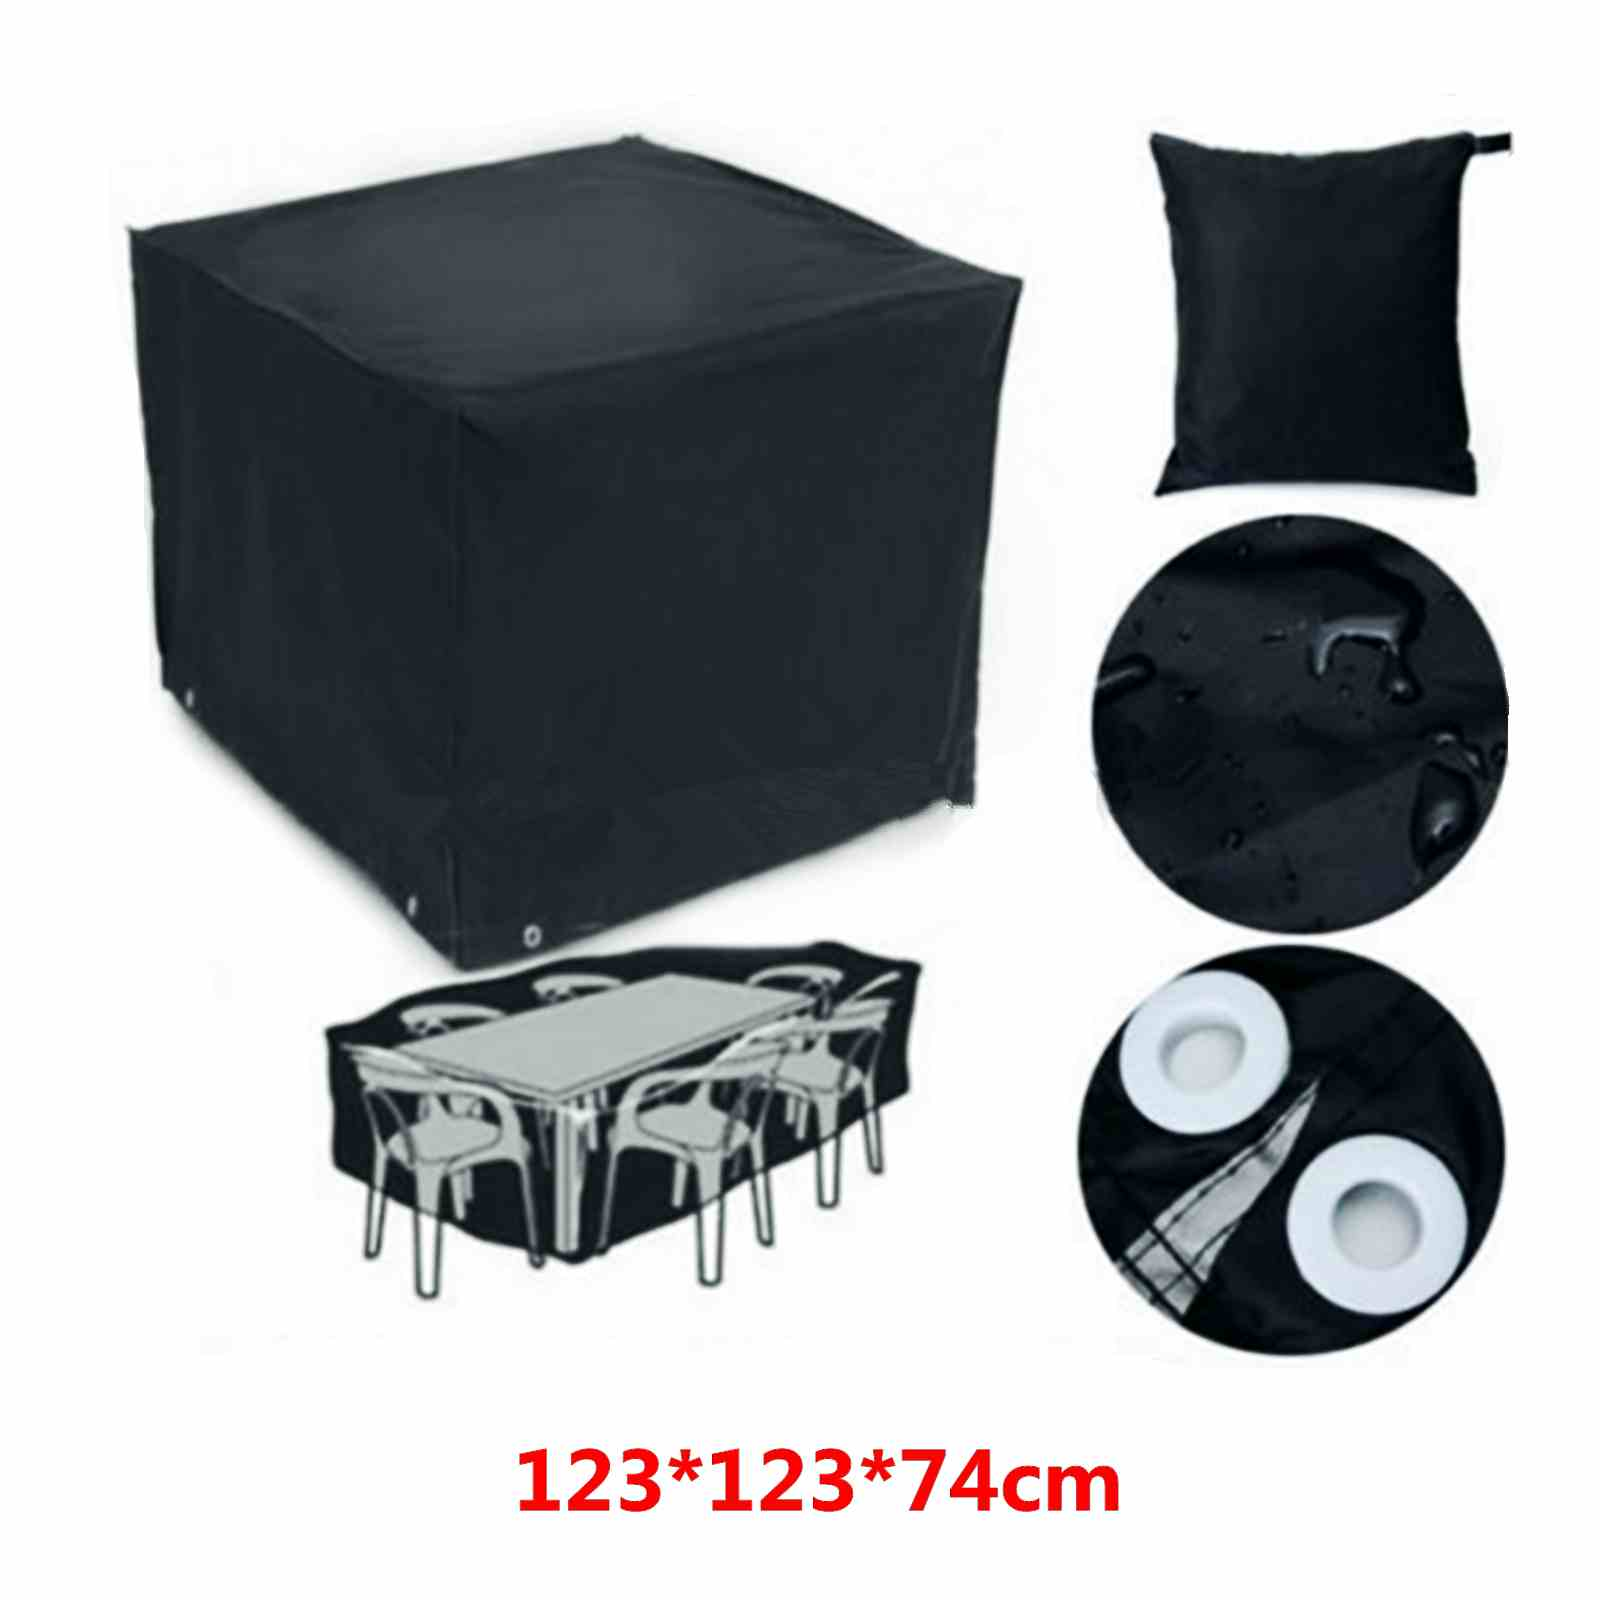 Chair Covers Wholesale China Folding X Cheap Price 123 74cm Rect Outdoor Garden Patio Table